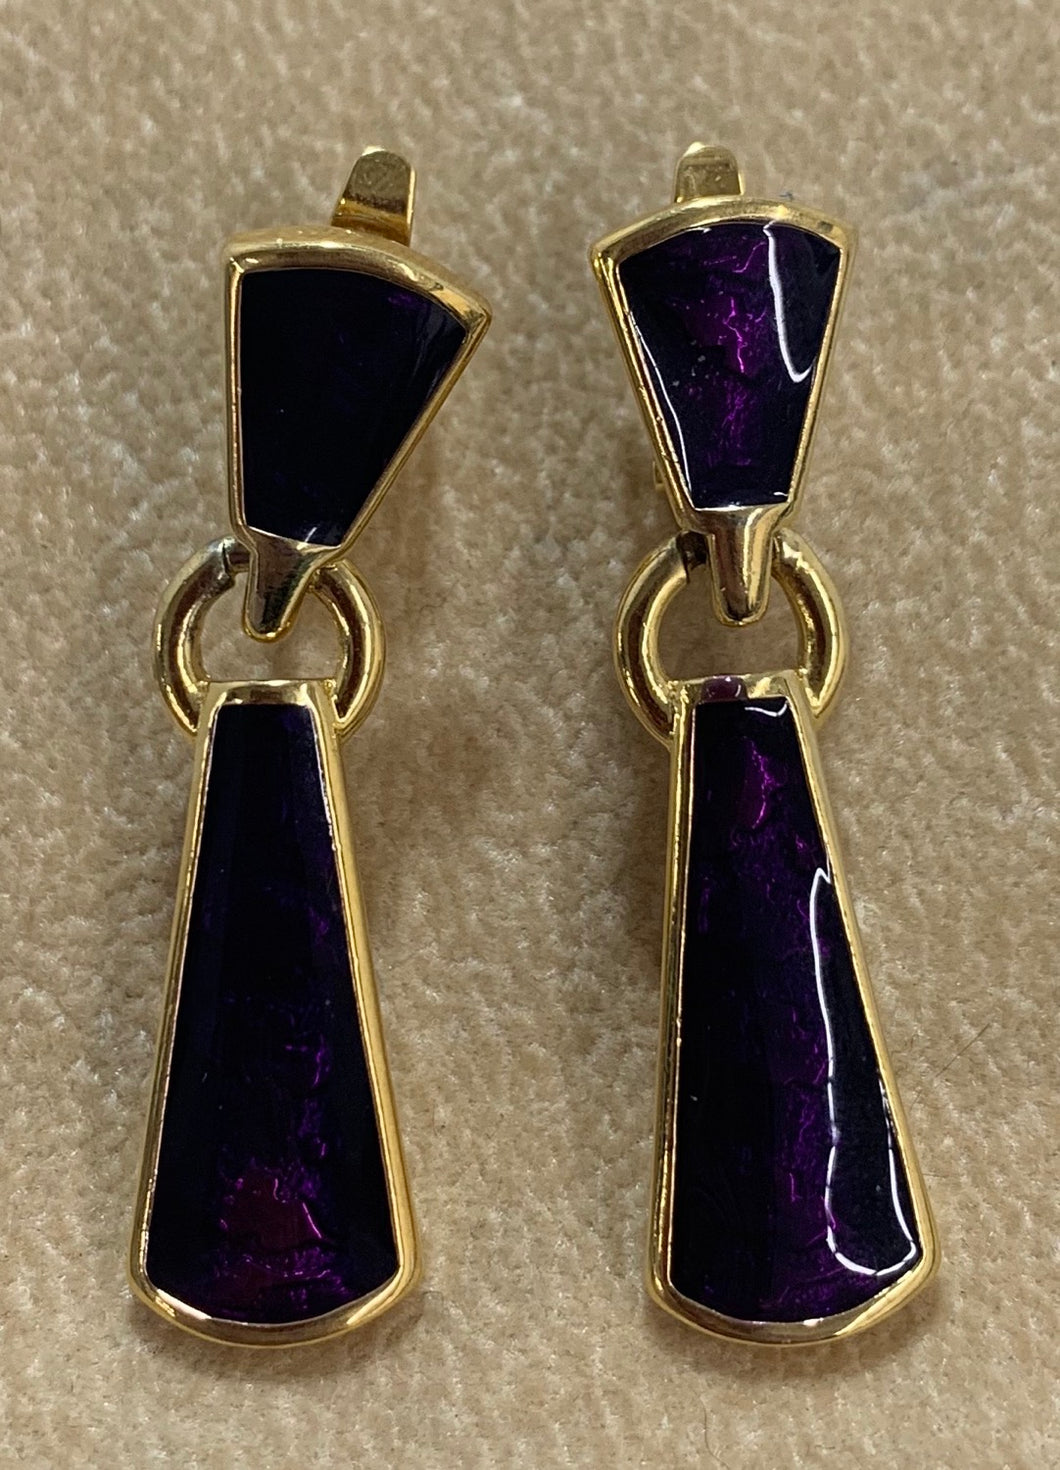 Trifari Vintage Gold Tone Purple Enamel Door Knocker Earrings